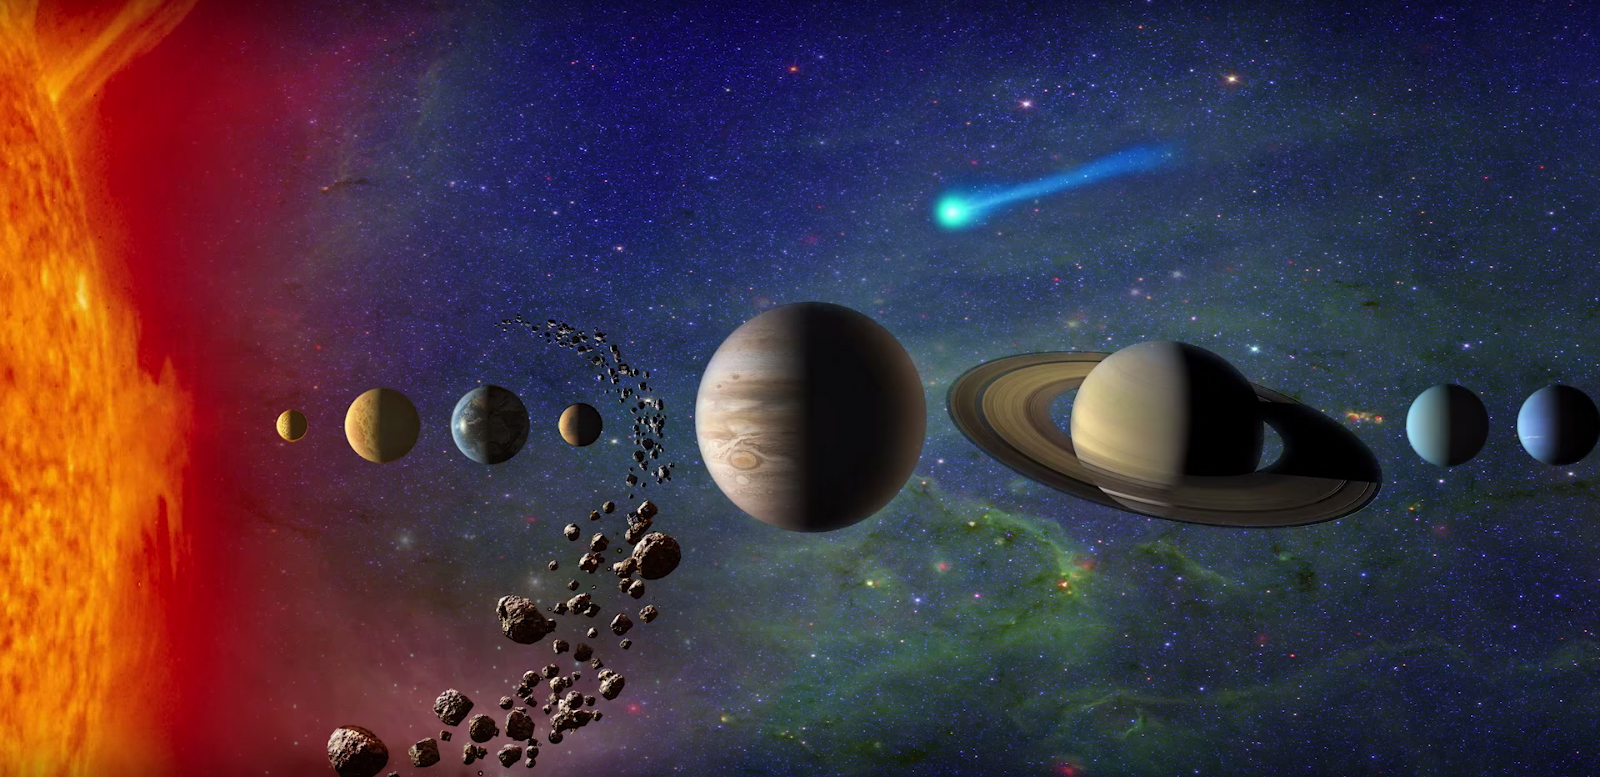 an analysis of planets and the solar system Solar system: solar system, assemblage consisting of the sun and those bodies orbiting it: 8 planets with about 170 known planetary satellites the eight planets of the solar system and pluto, in a montage of images scaled to show the approximate sizes of the bodies relative to one another.